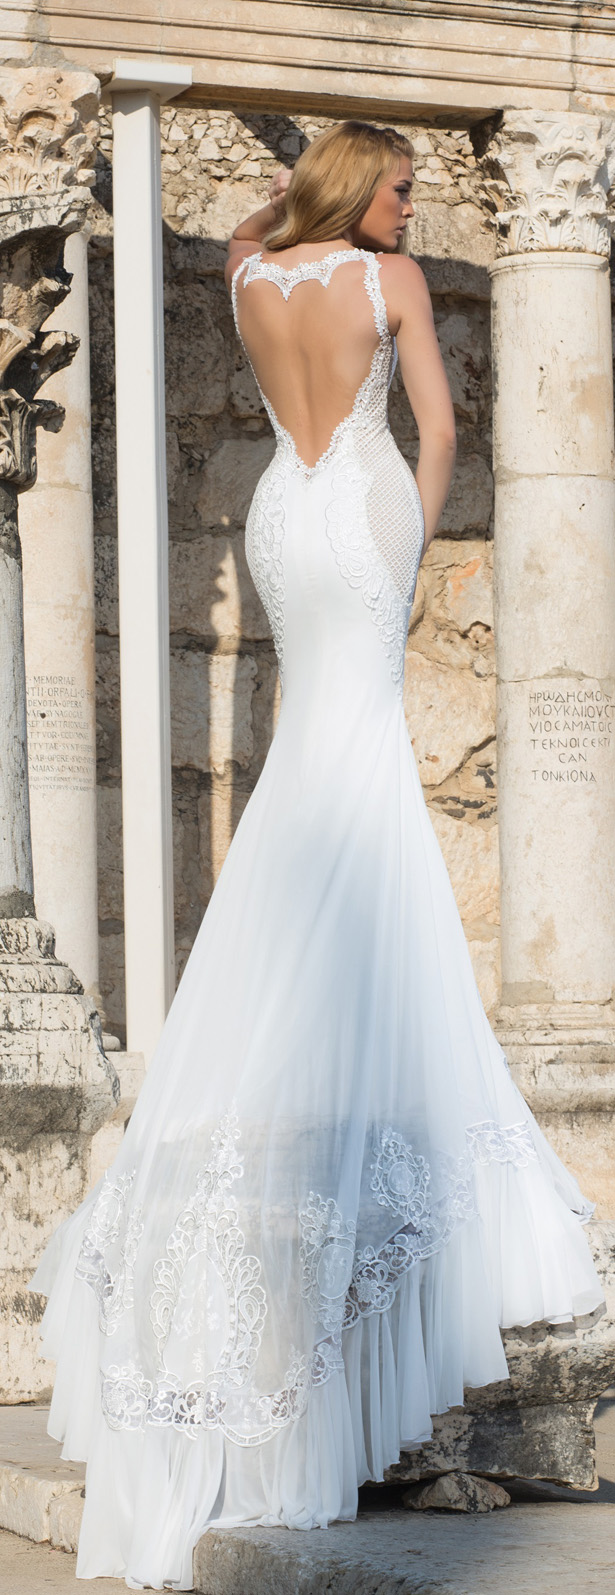 shabiisrael-2015-wedding-dresses-47